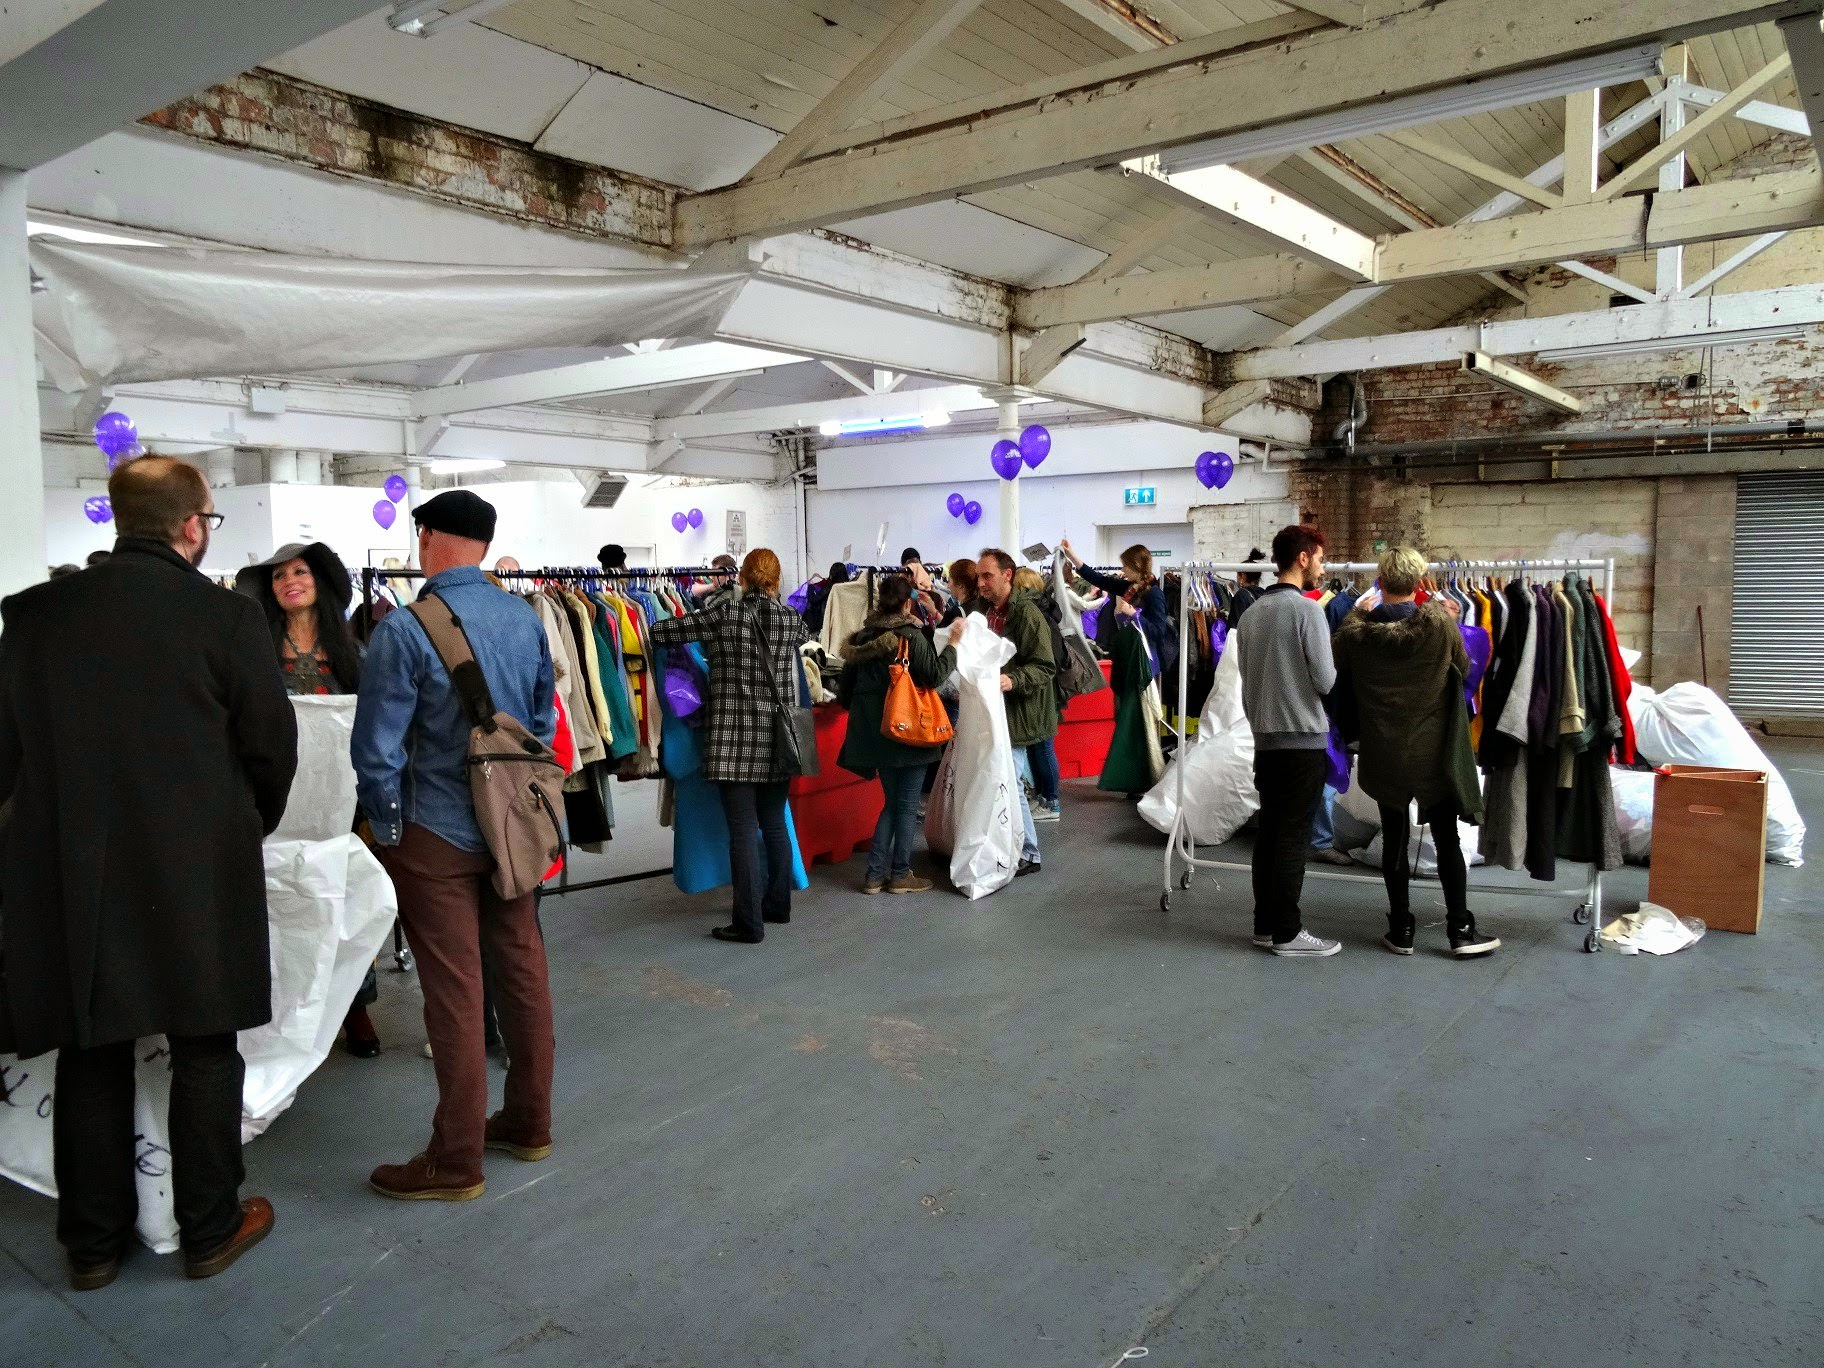 Vintage shopping in Birmingham at the custard factory